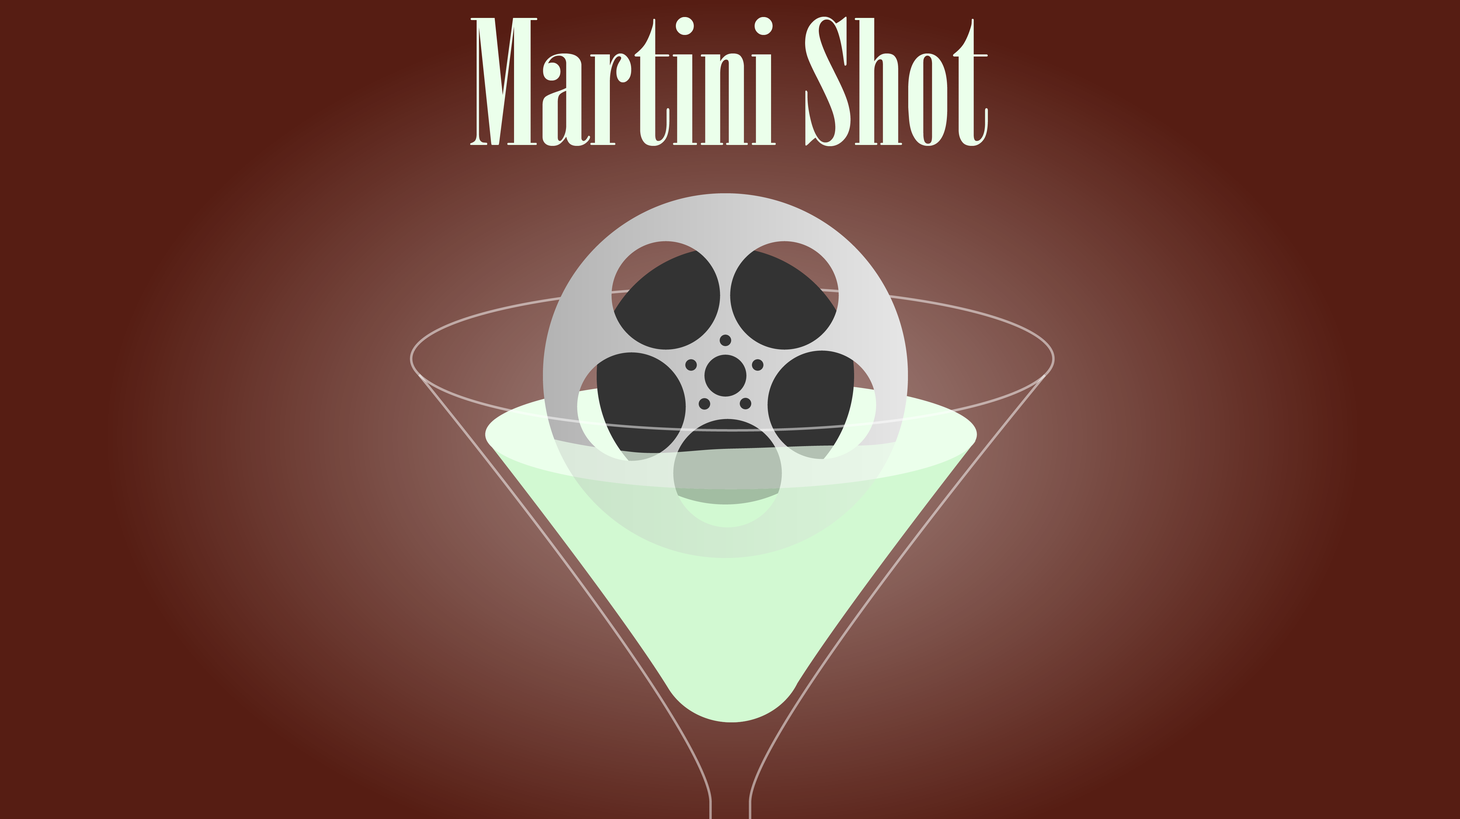 This is Rob Long and on today's Martini Shot I realize that there are two kinds of people in the world. We're all either R2D2 or C3P0 or Wile E Coyote or the Road Runner or Moses or Complaining Israelites or Jeffrey or Ina.